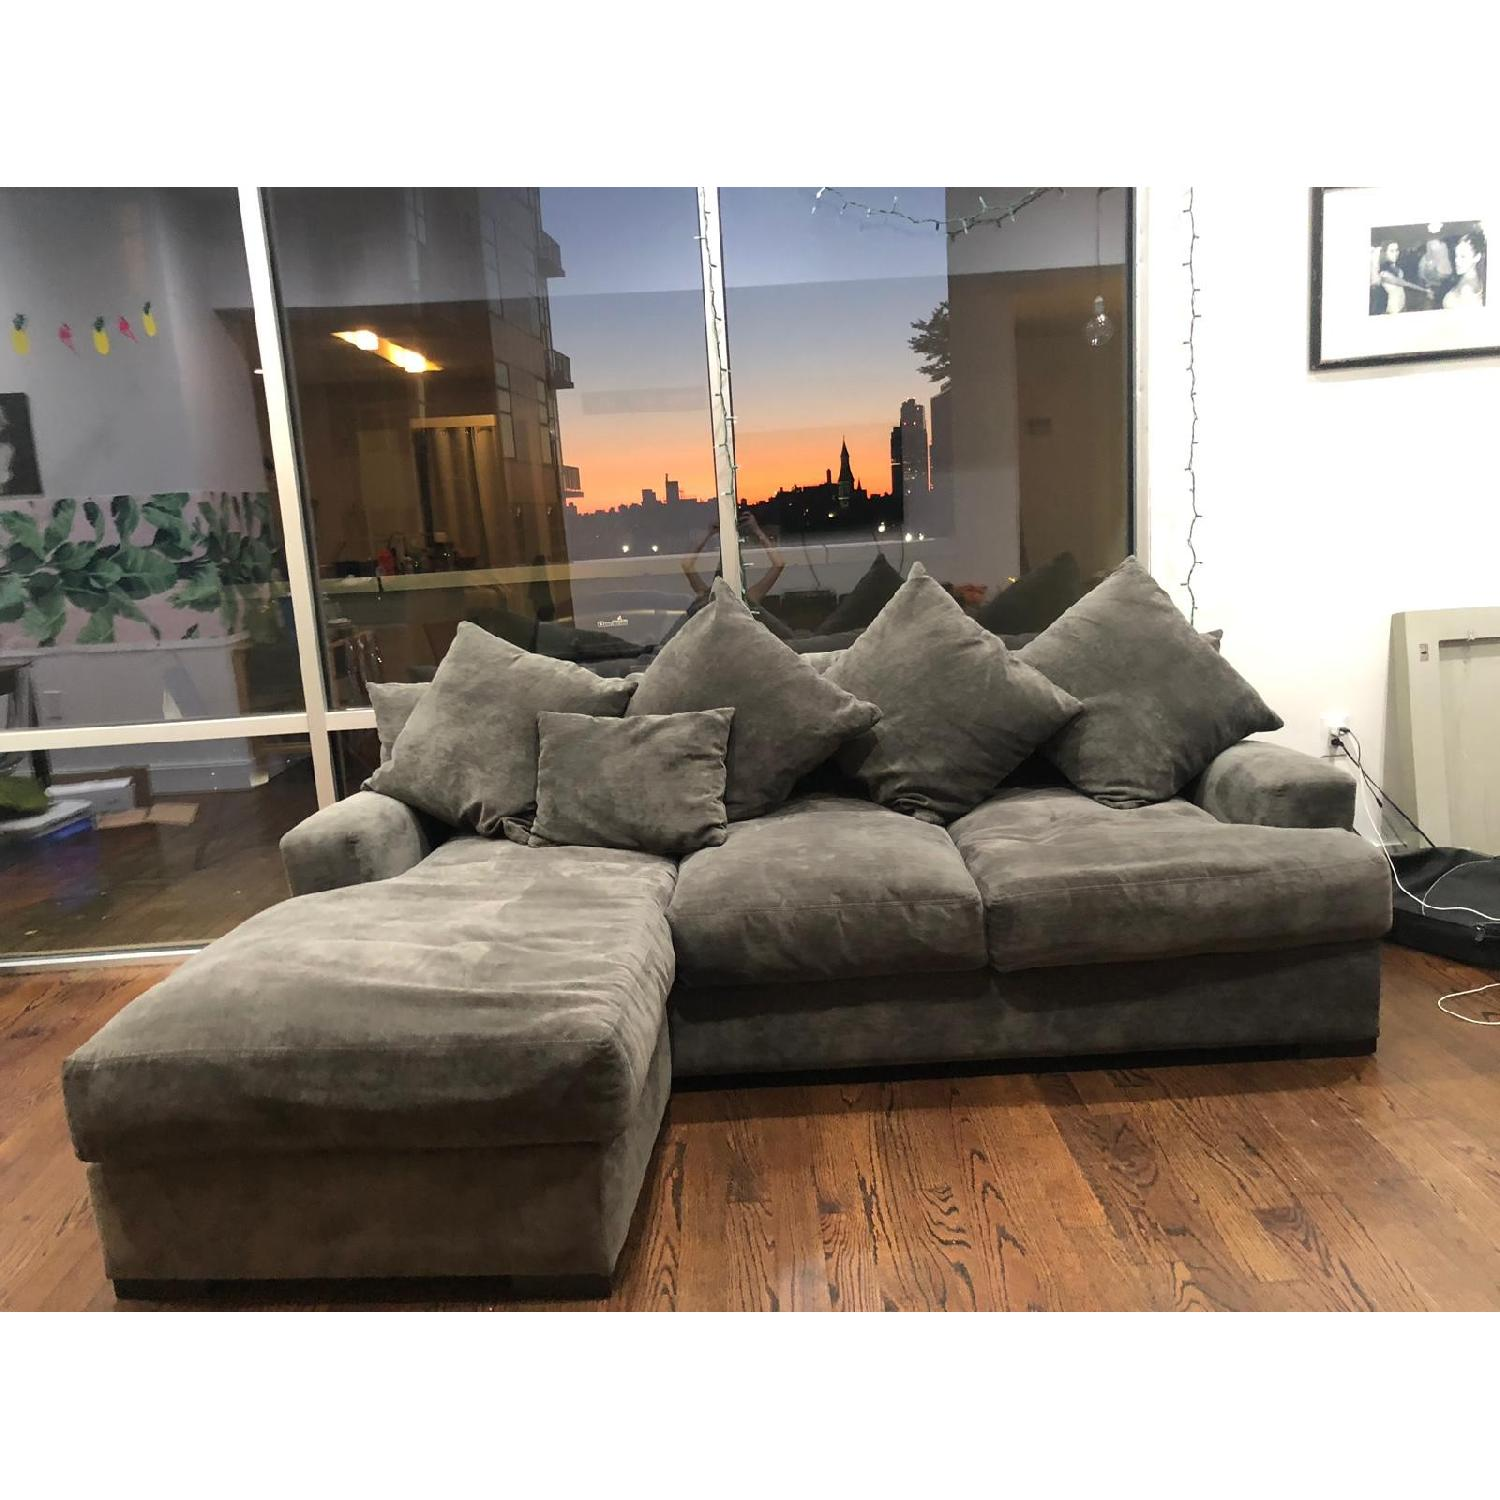 Gallery Furniture Grey Suede L Shaped Sectional Sofa